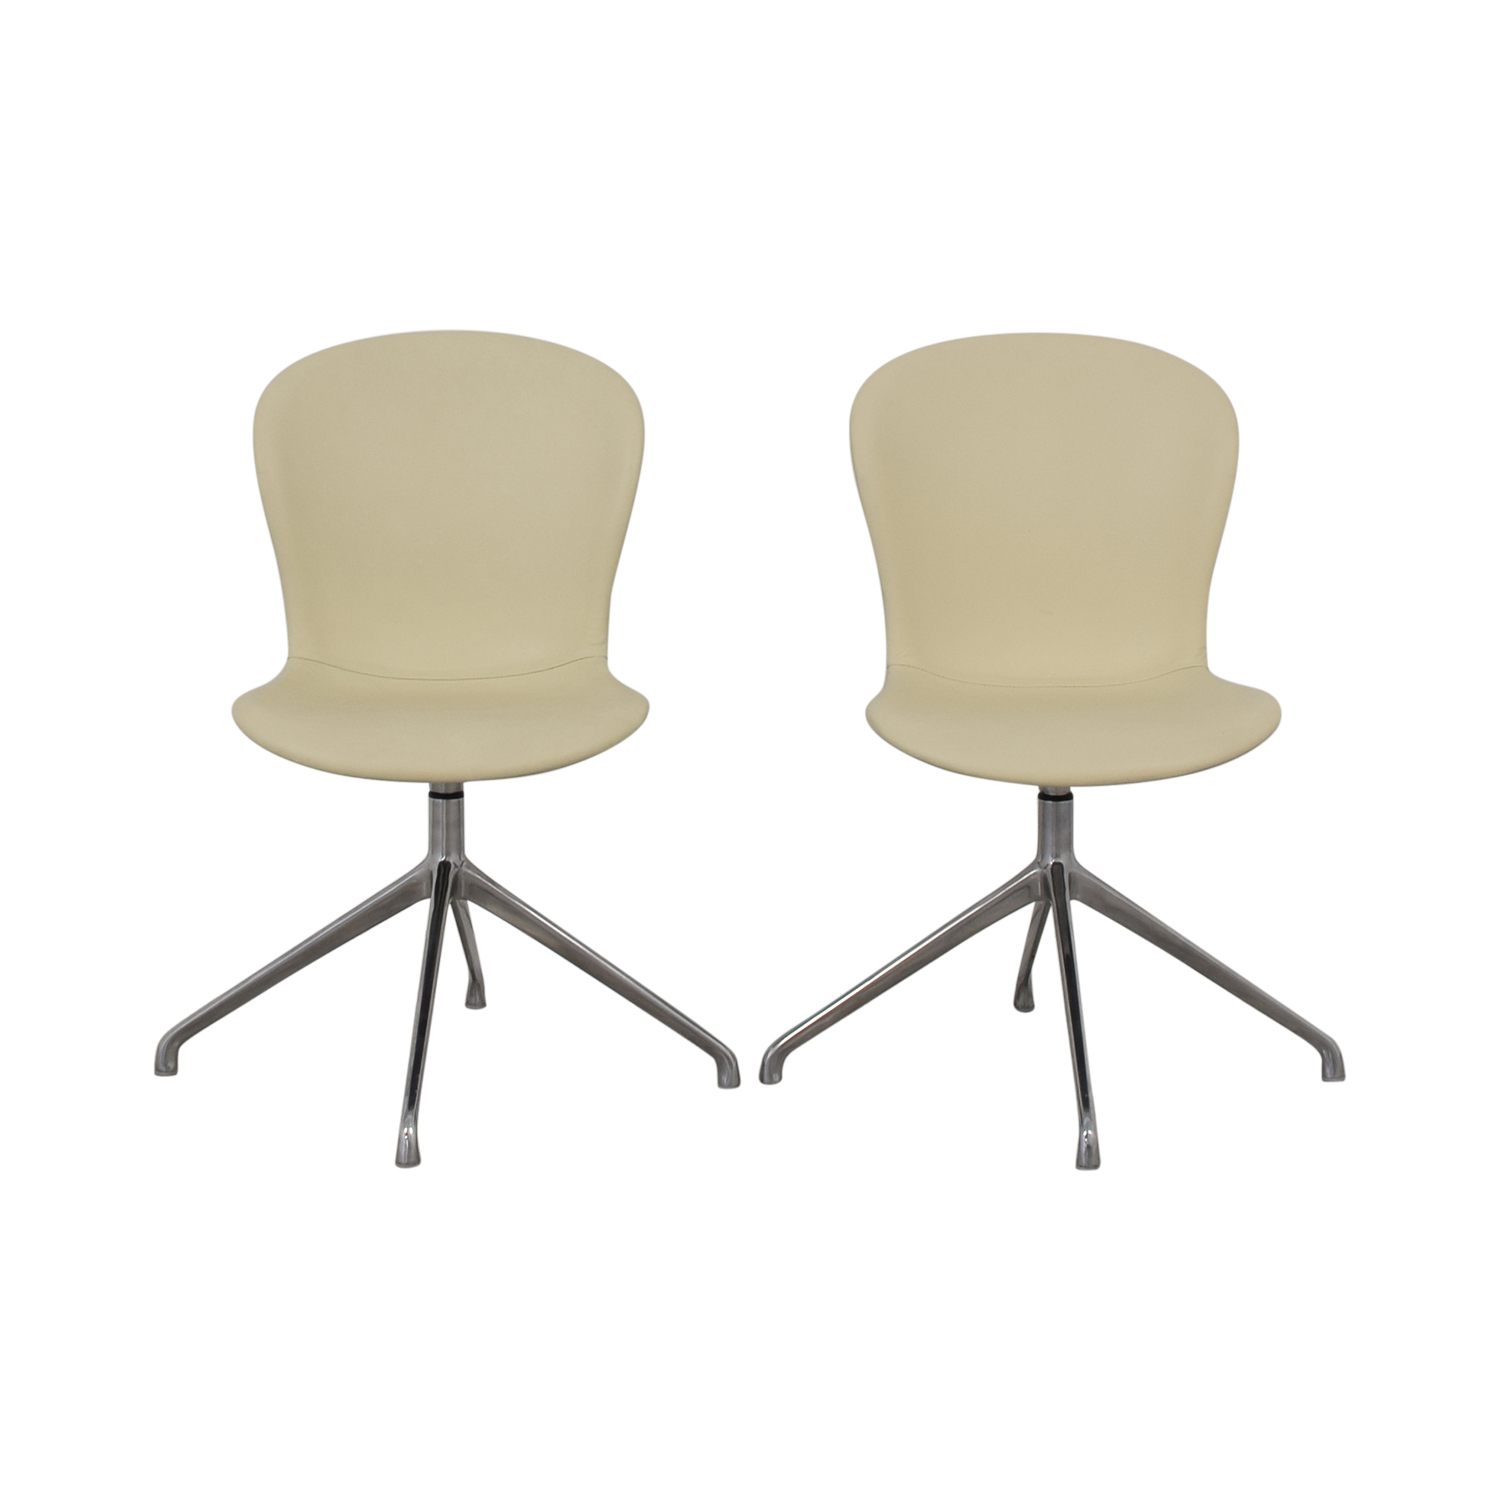 BoConcept BoConcept Adelaide Dining Chairs on sale